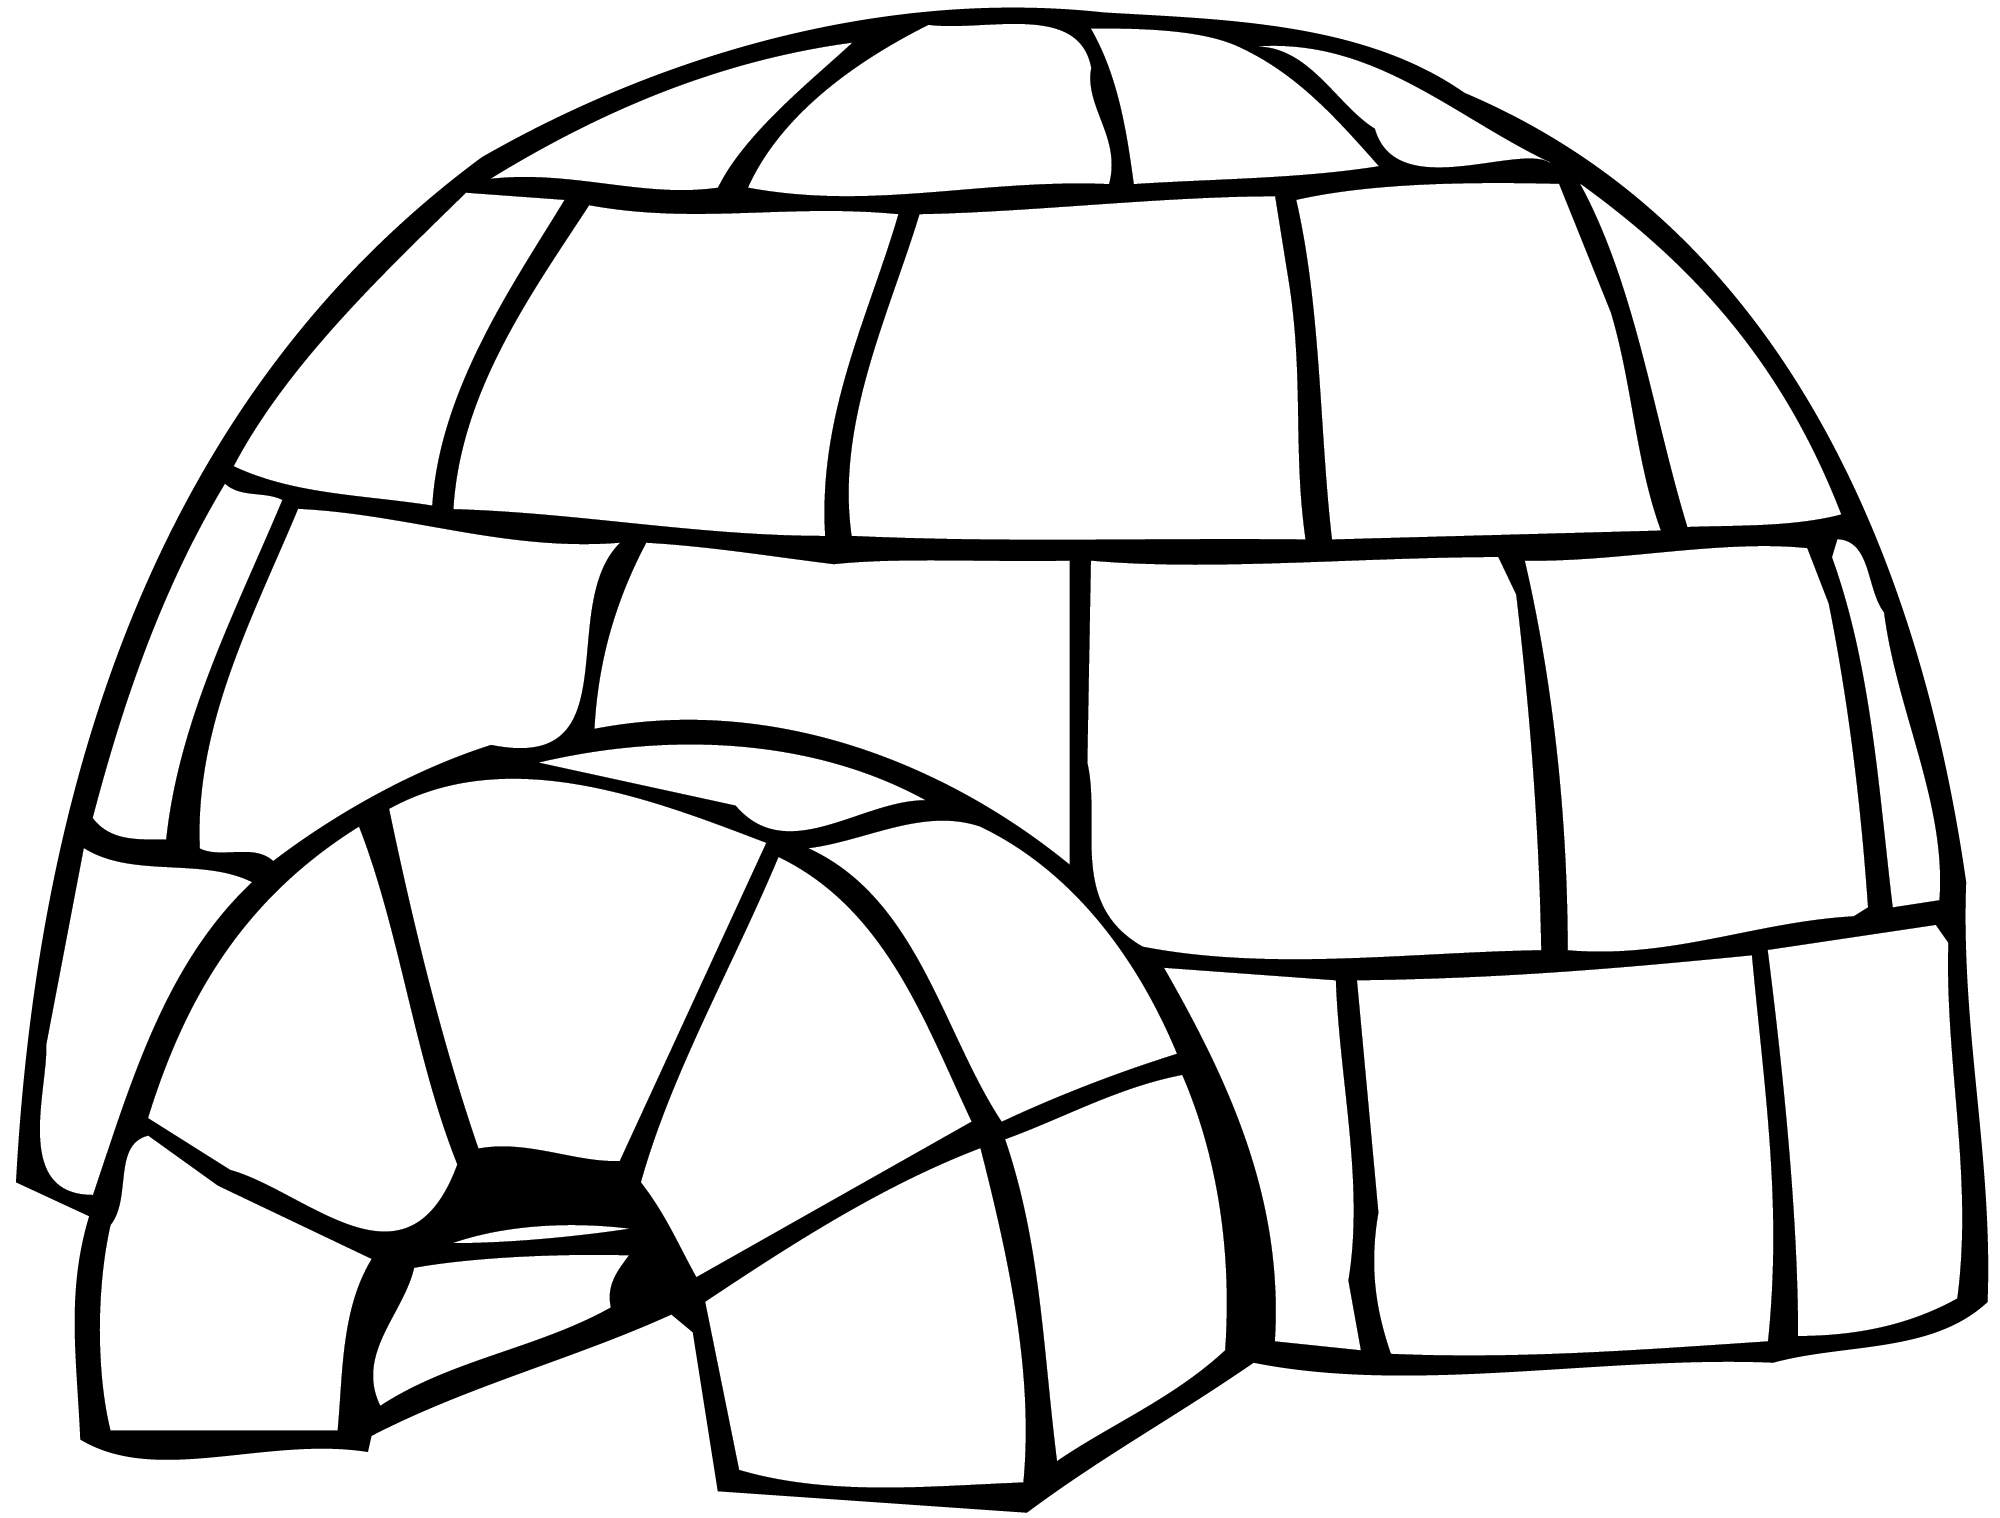 35 dessins de coloriage igloo  u00e0 imprimer